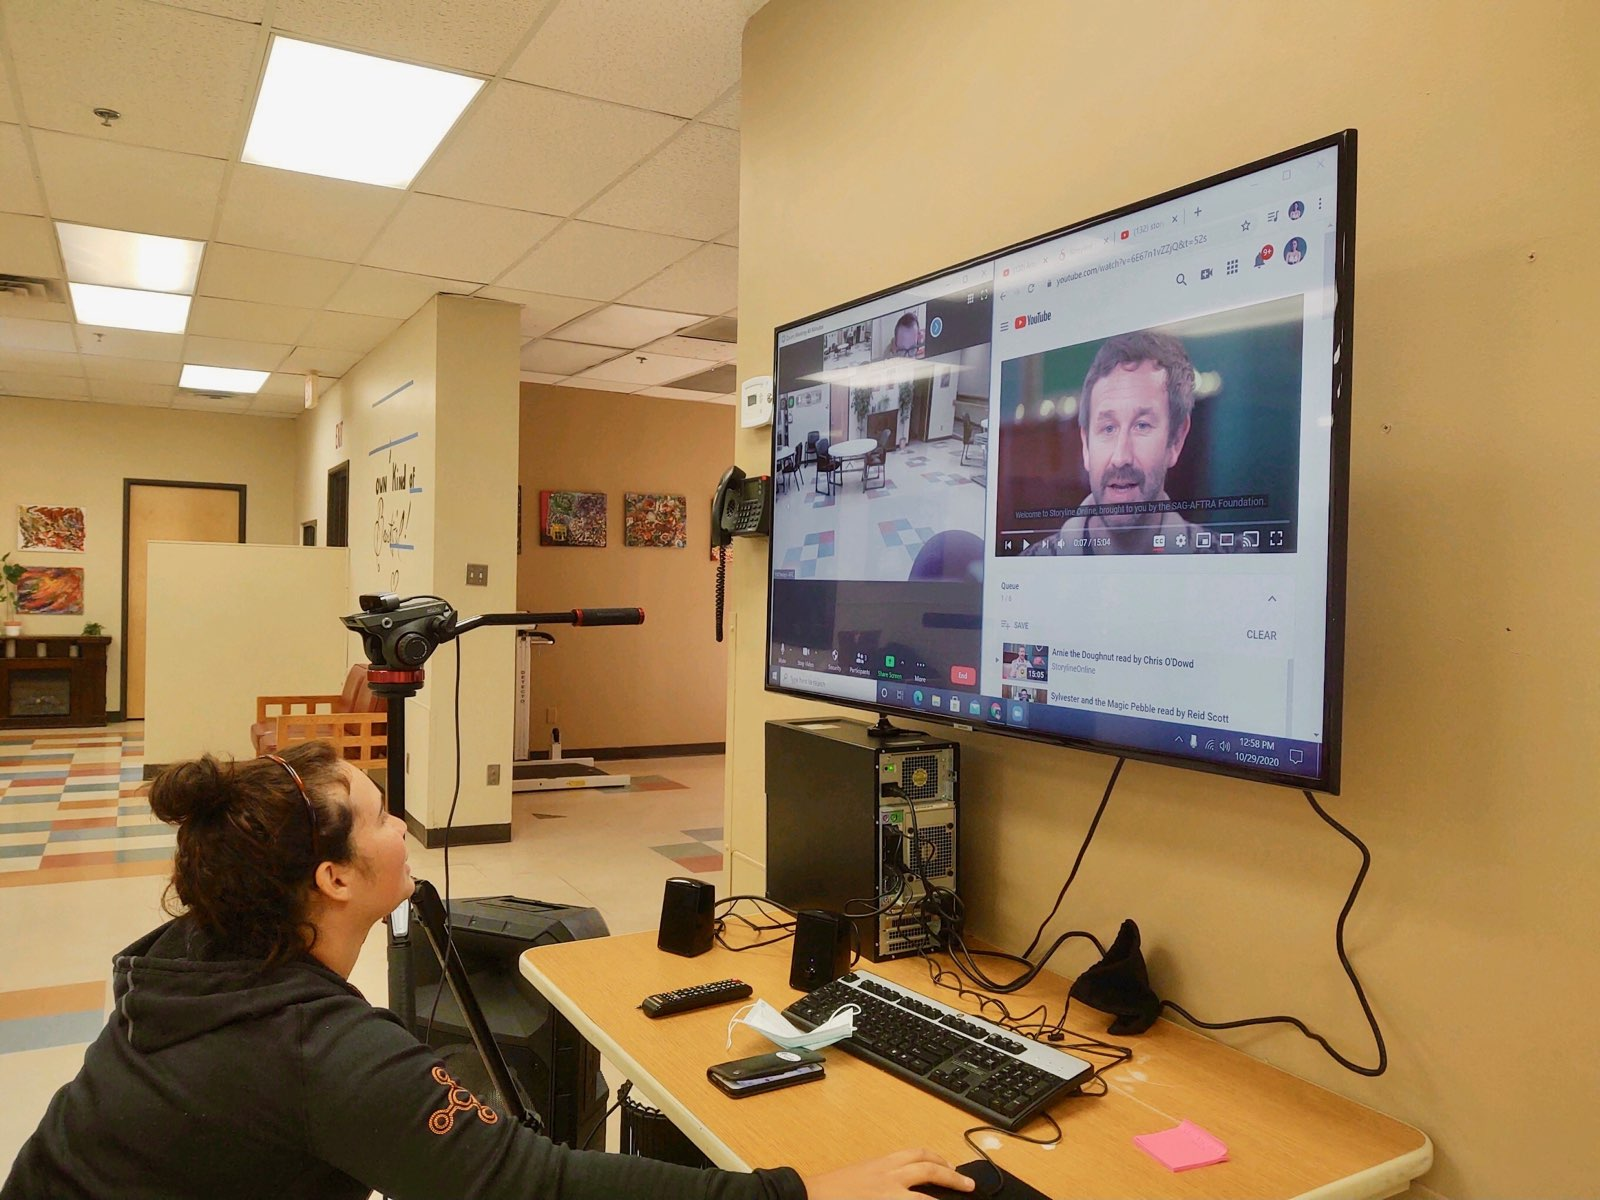 Yumi, and Adelante staff member, plays a YouTube video for day services clients as part of virtual learning.